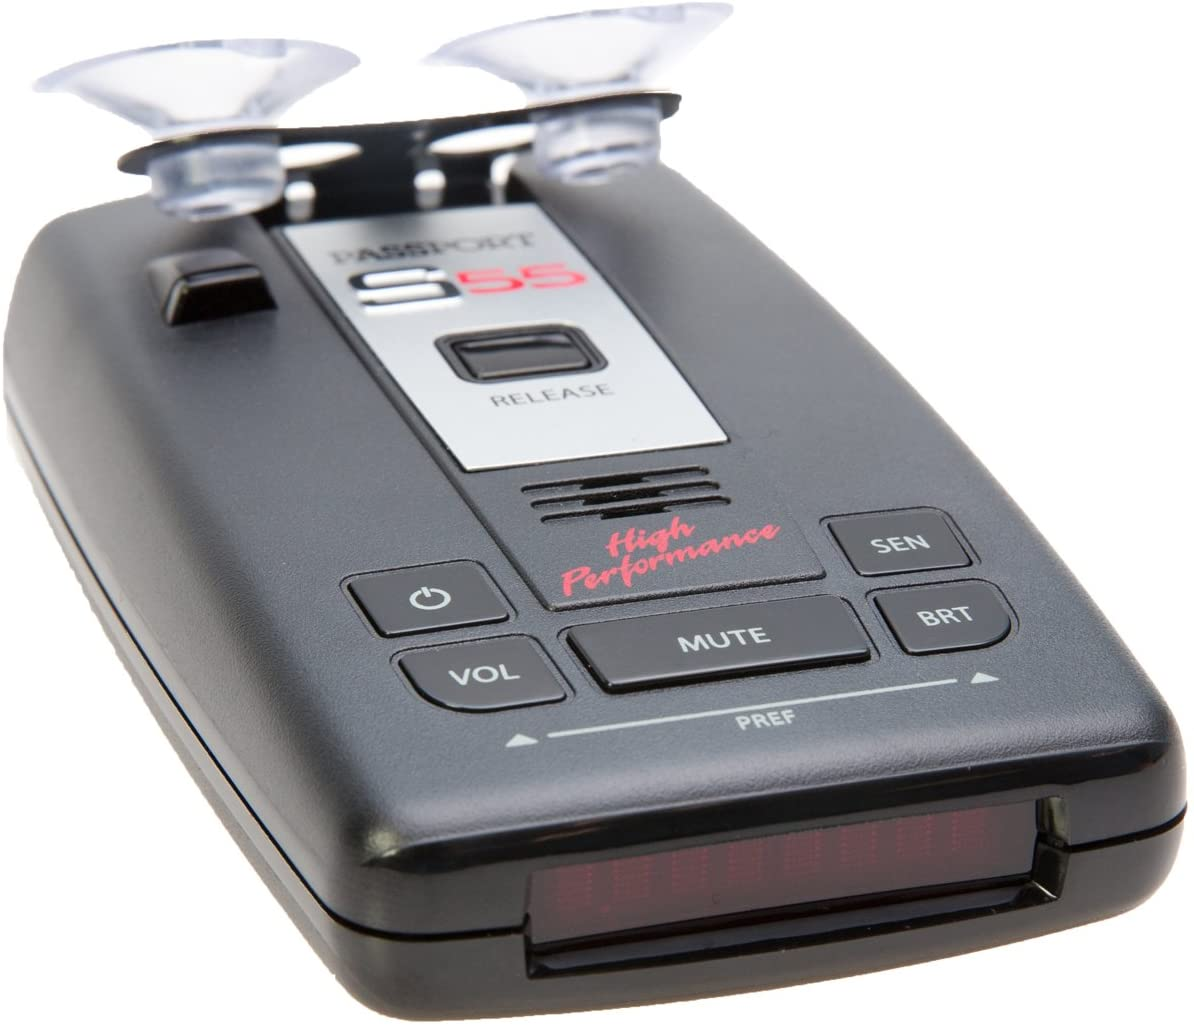 Escort Passport S55 facing sideways with suction cups